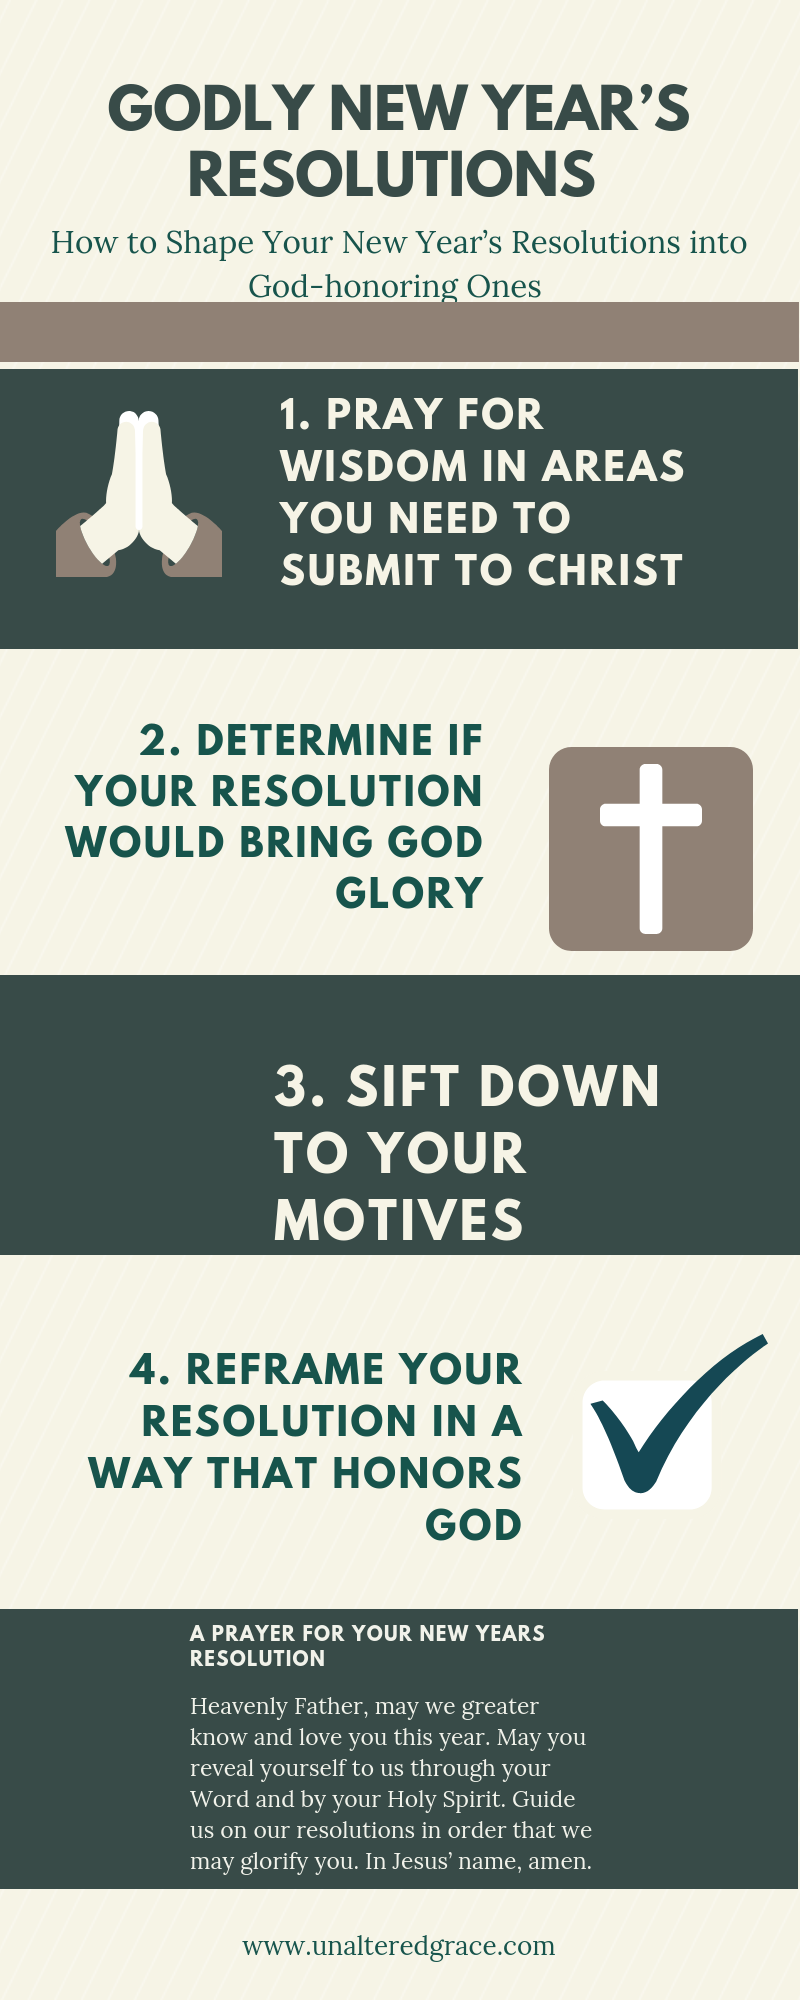 Godly New Year's Resolutions